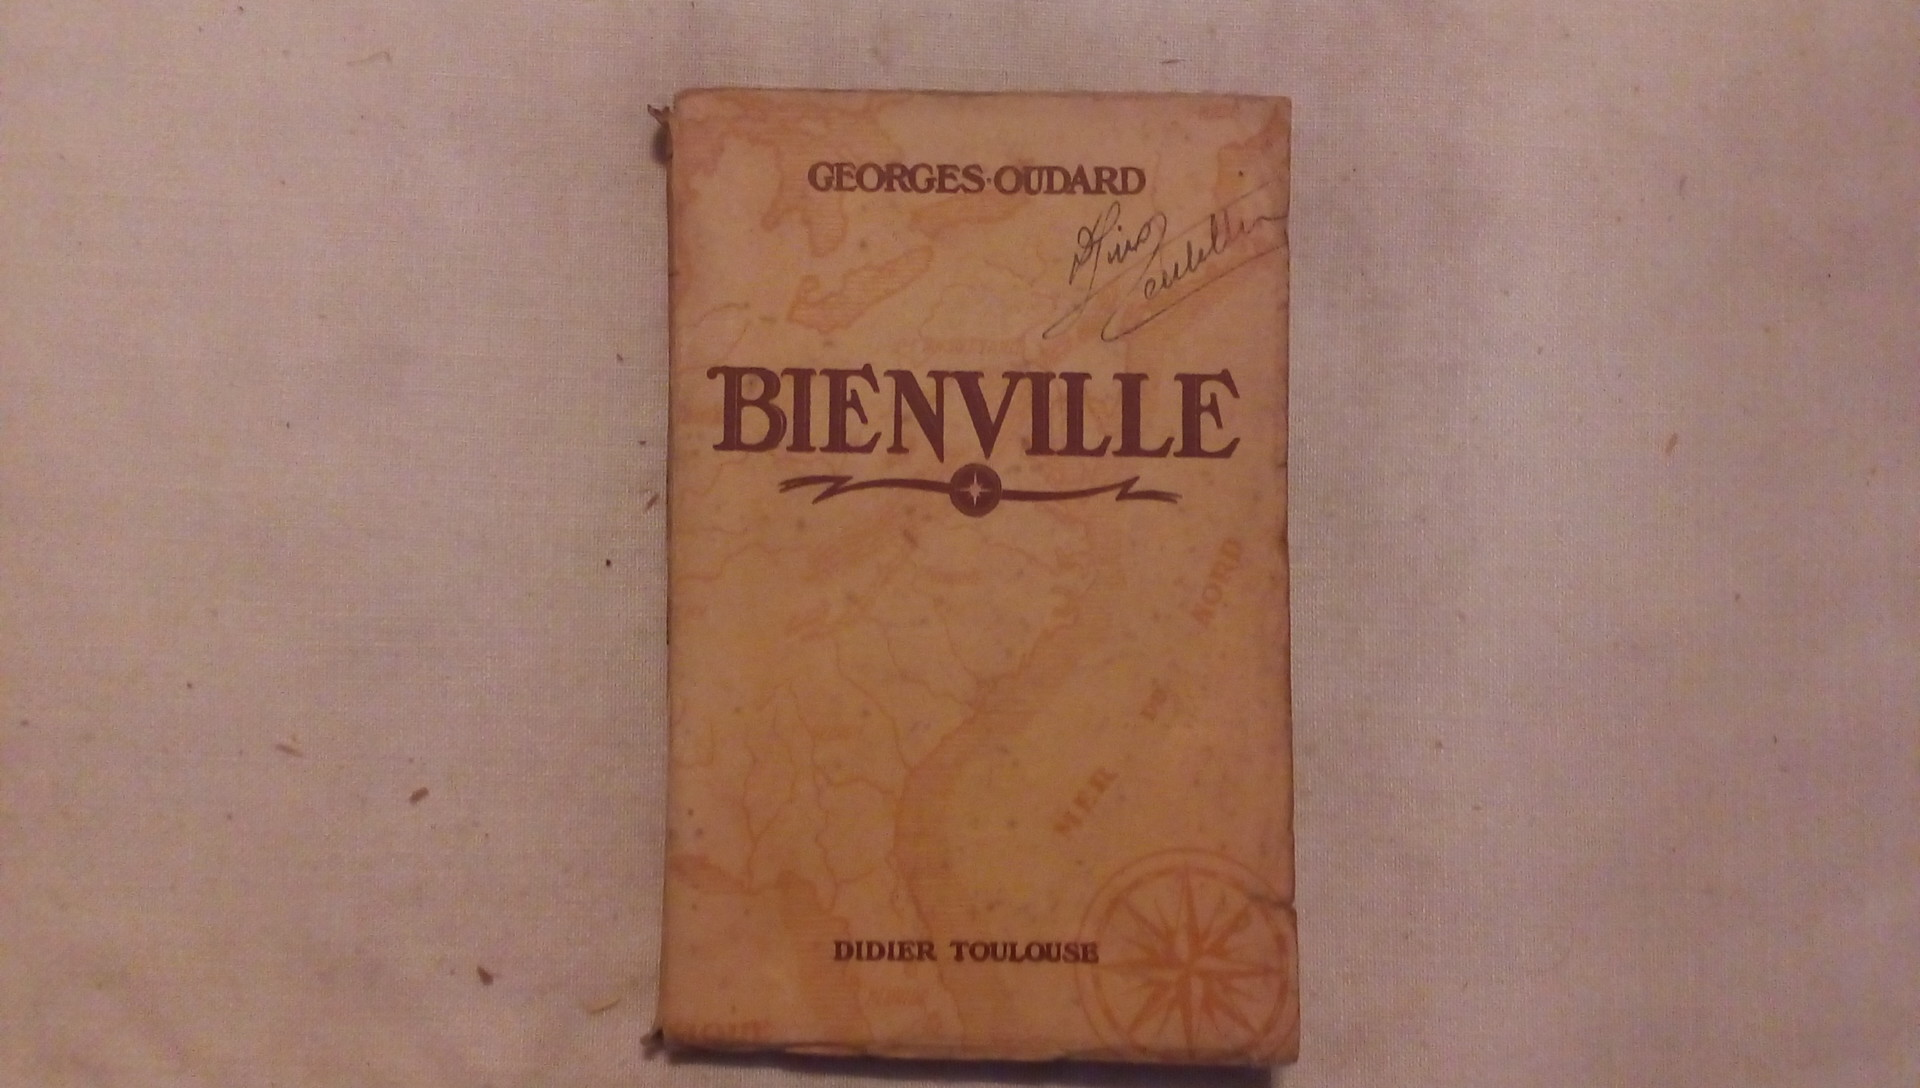 Benville - Georges Oudard Didier Toulouse